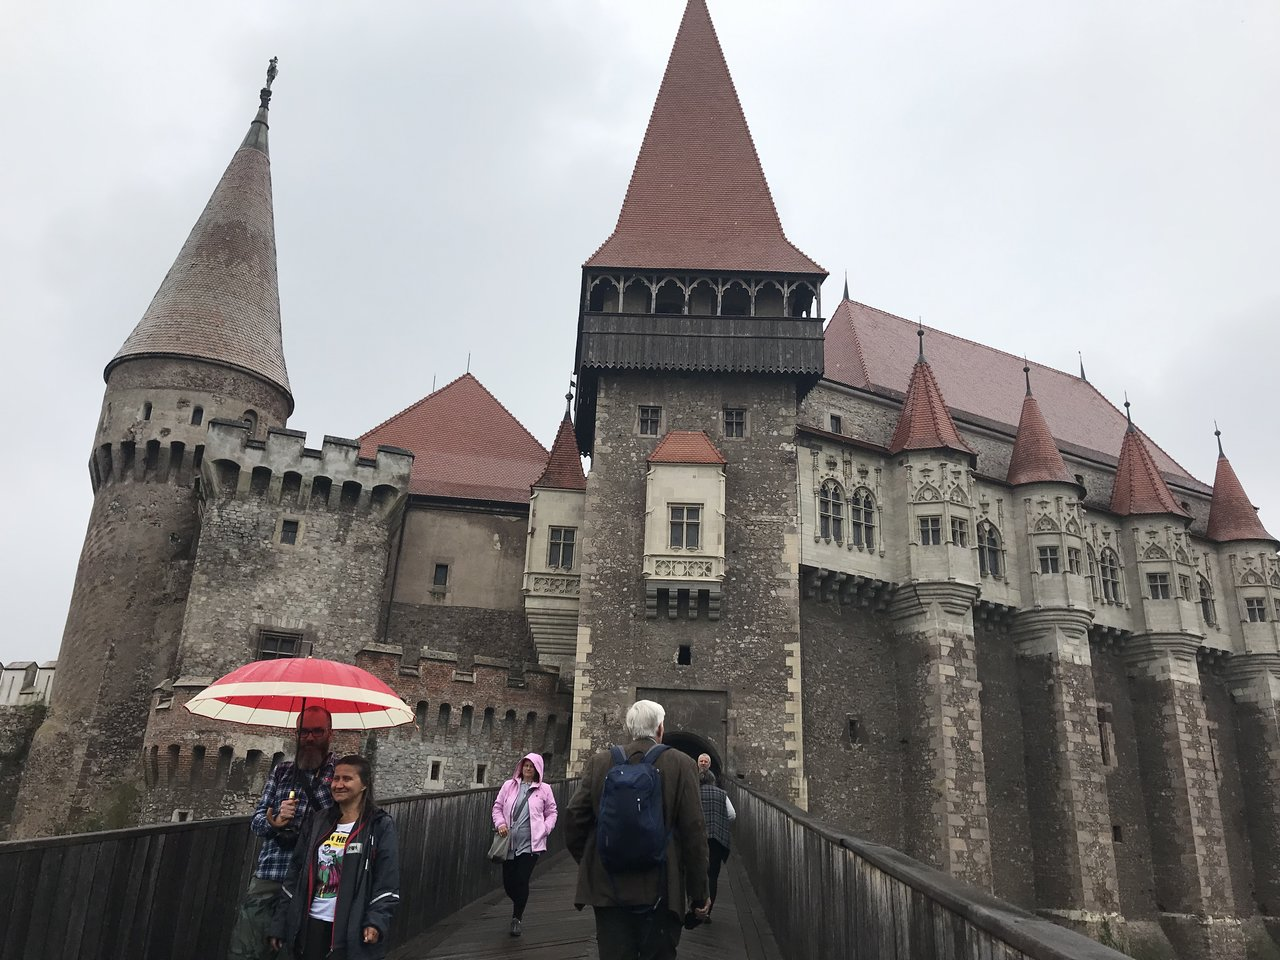 Corvin Castle on a rainy day  | Photo taken by Anne L